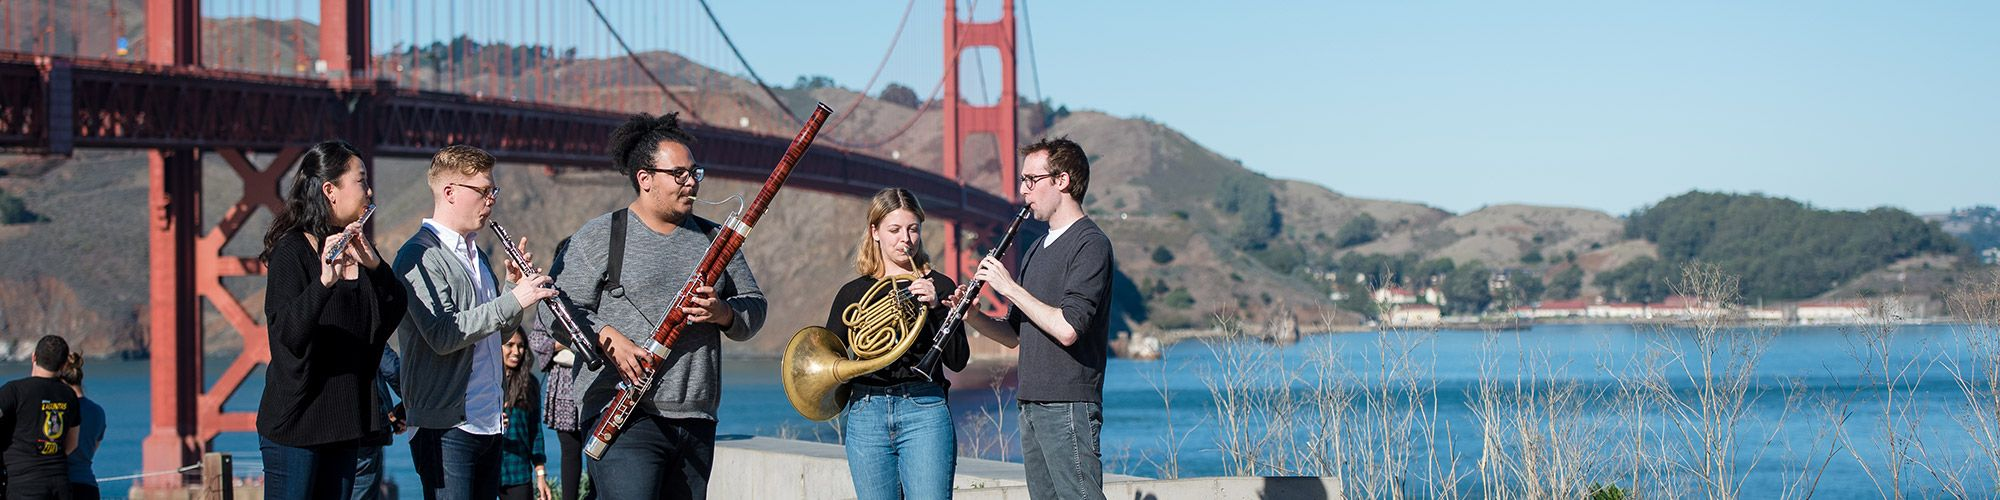 SFCM students out in San Francisco: woodwind quintet plays near Golden Gate Bridge